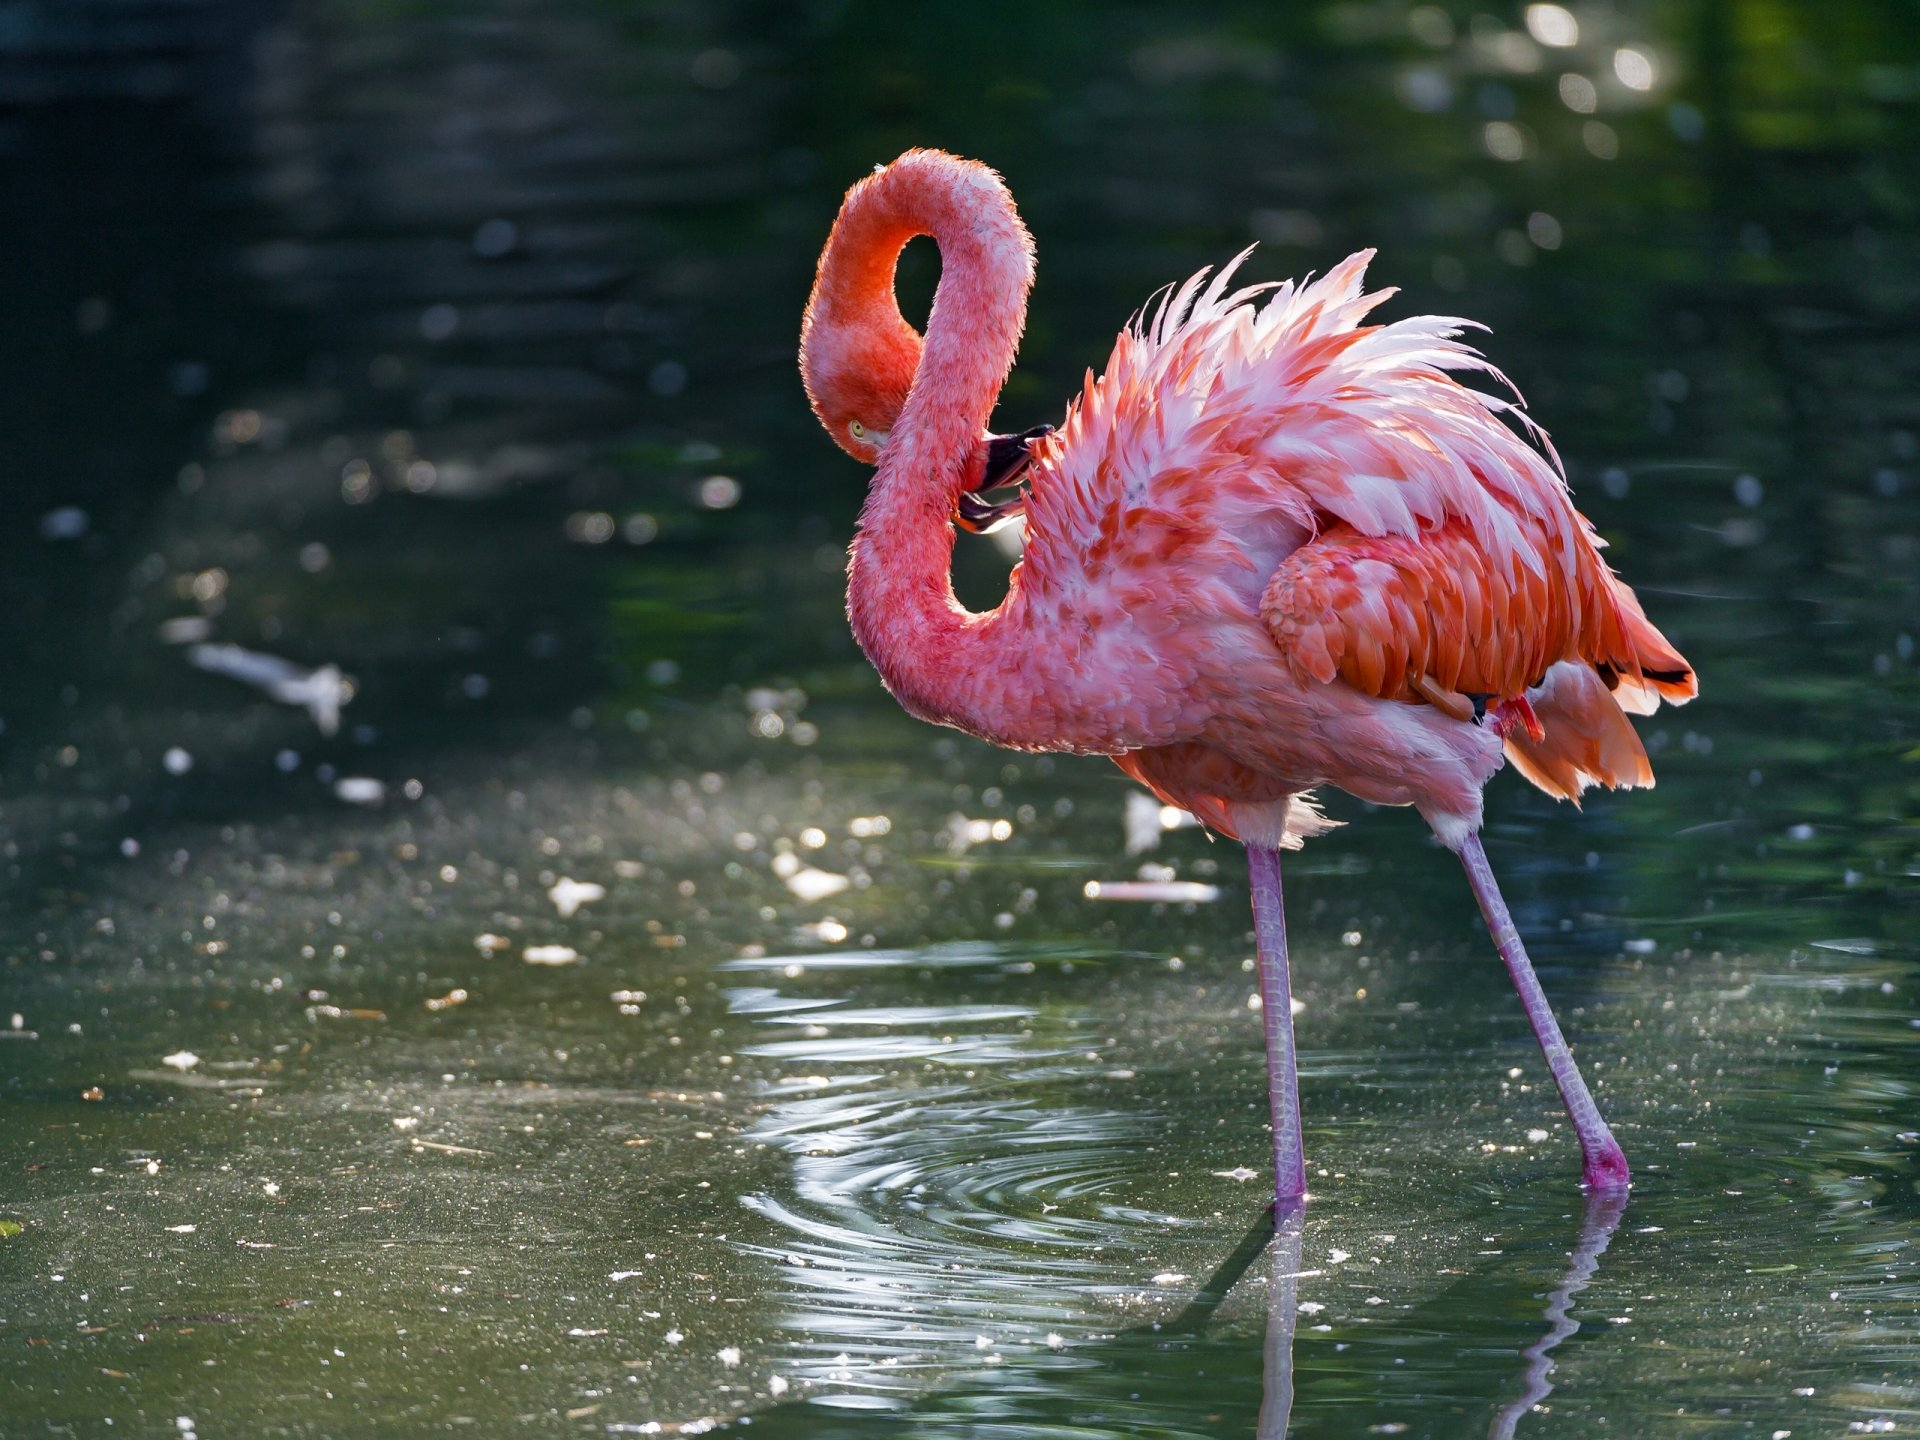 pink flamingo Flamingos or flamingoes/fləˈmɪŋɡoʊz/ are a type of wading bird in the family phoenicopteridae, the only family in the order phoenicopteriformes there are four flamingo species in the americas and two species in the old world flamingo comes from portuguese or spanish flamengo, flame-colored.